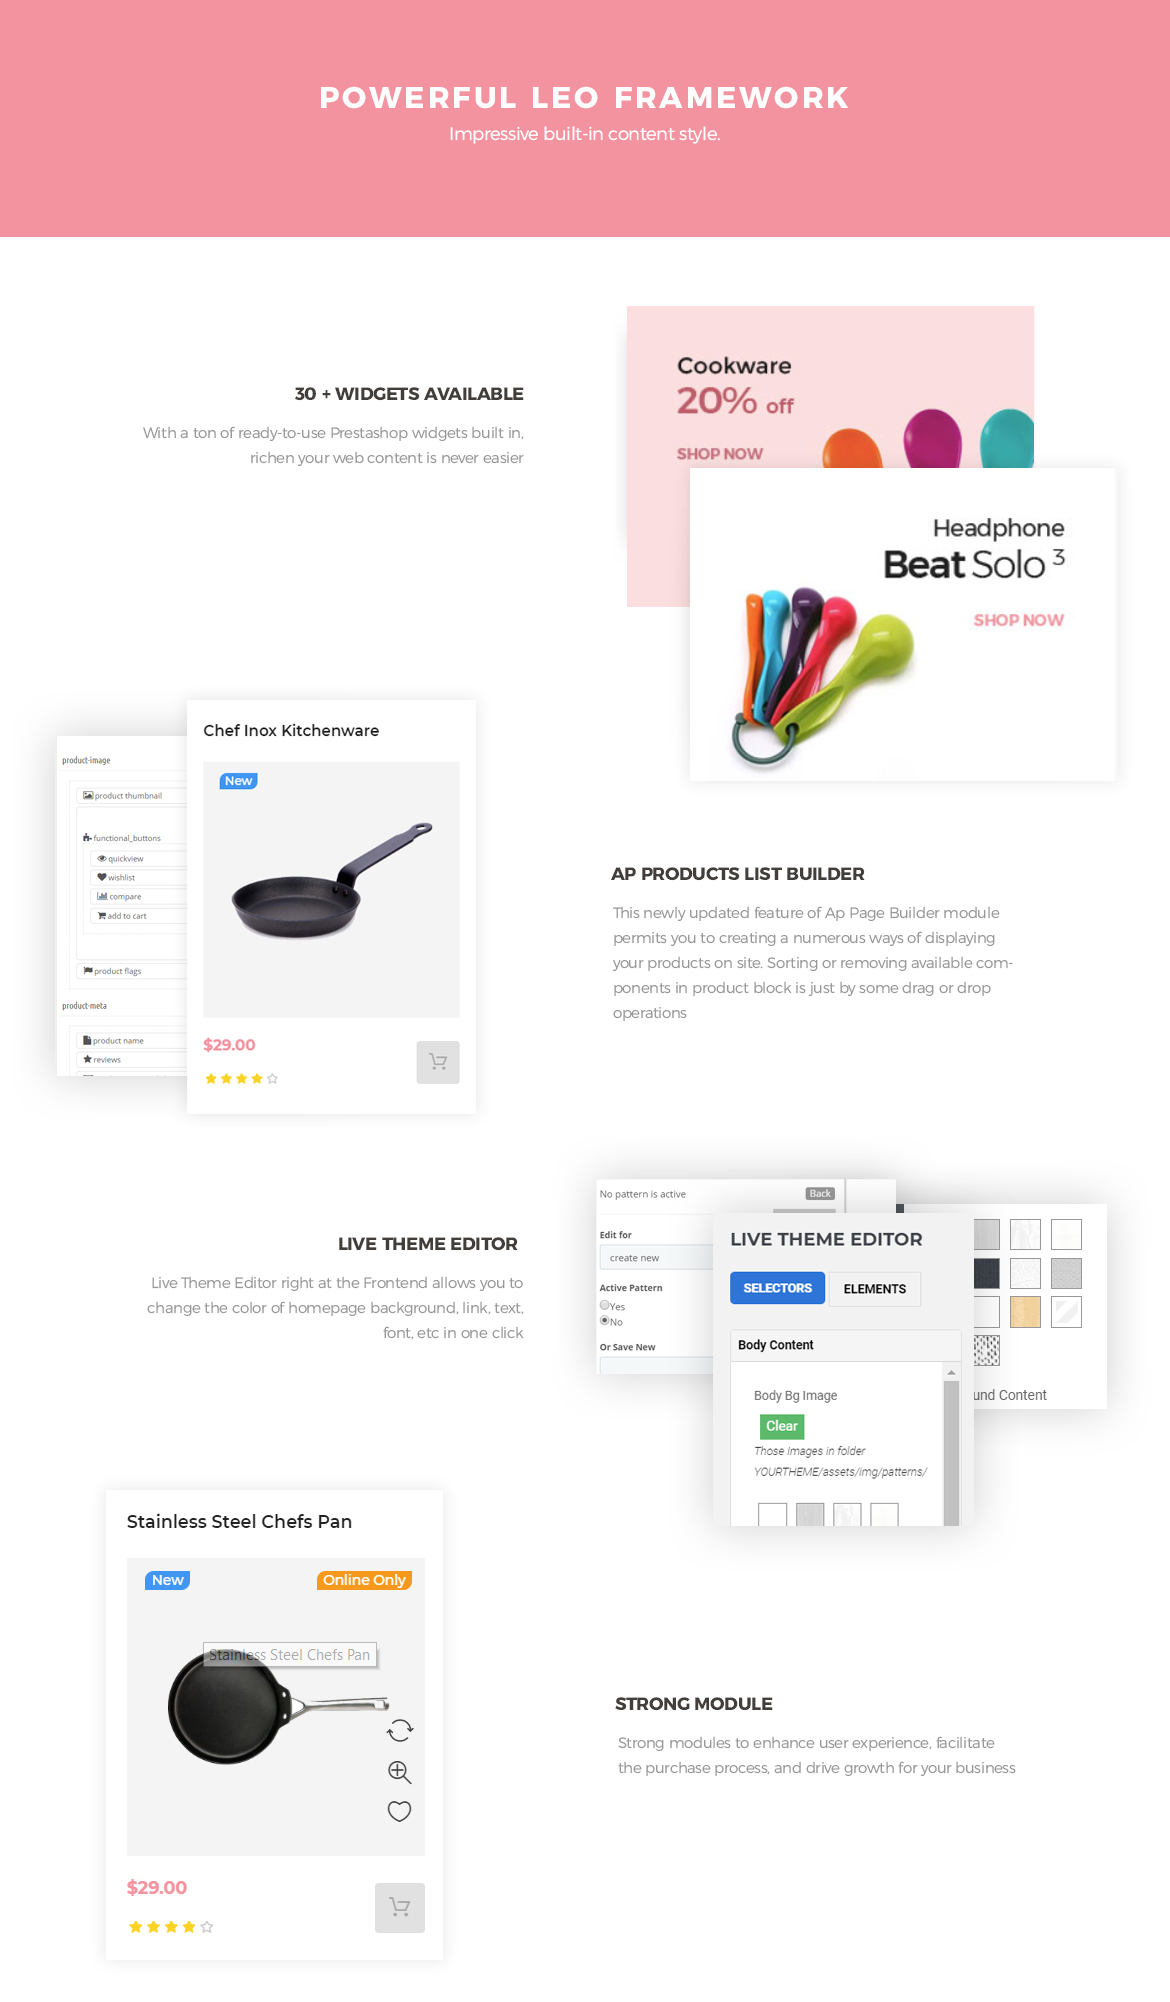 powerful prestashop framework - Leo Uniware Prestashop Theme - Kitchen Tool, Cookware, Kitchenware